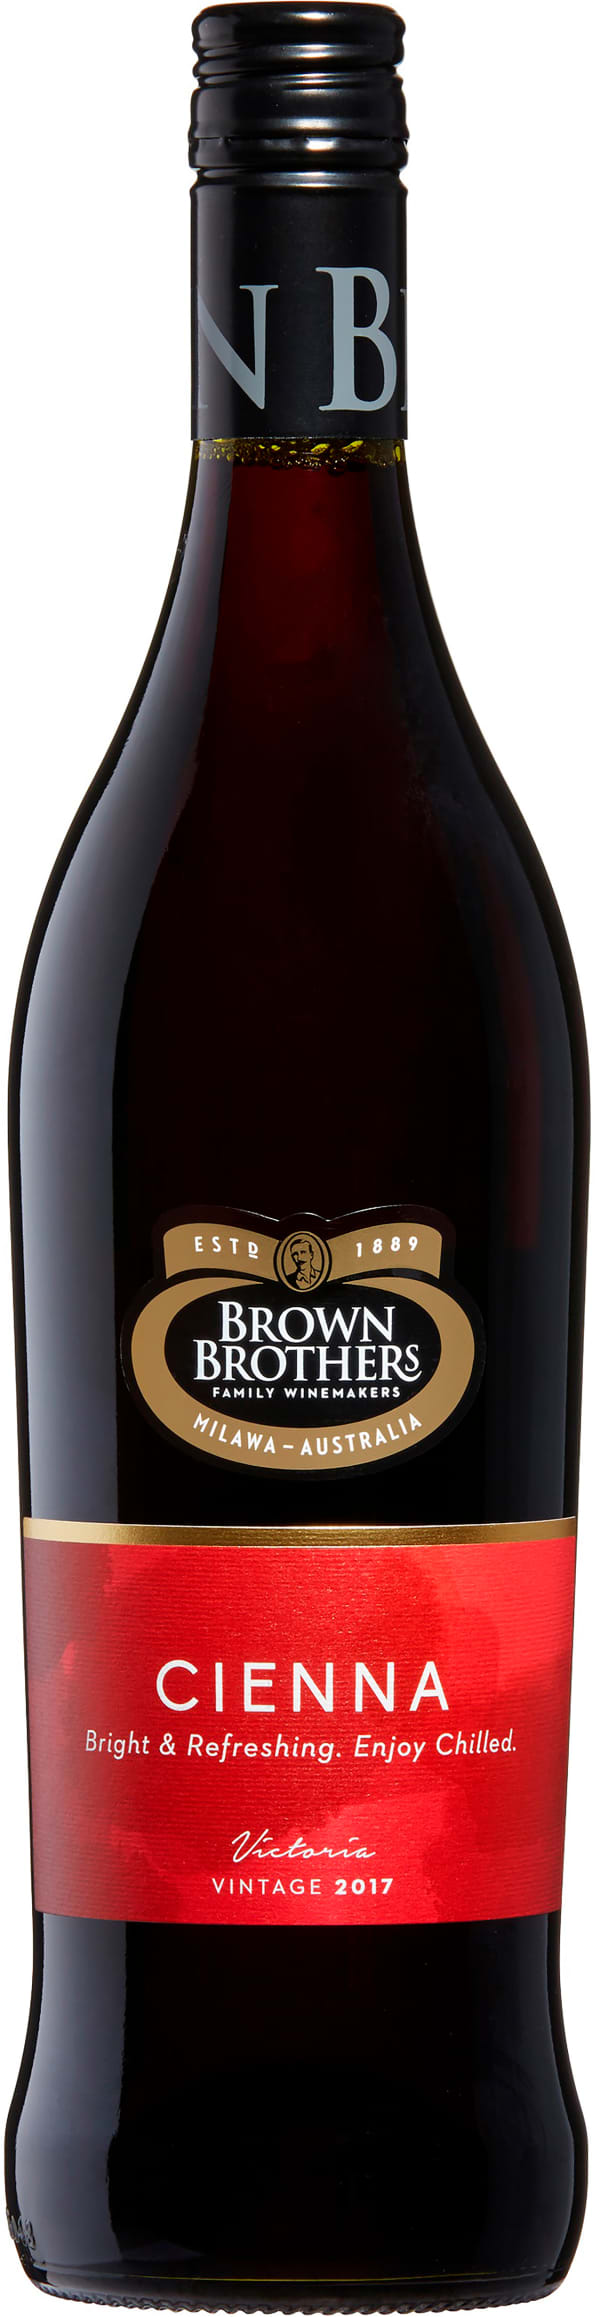 Brown Brothers Cienna 2017